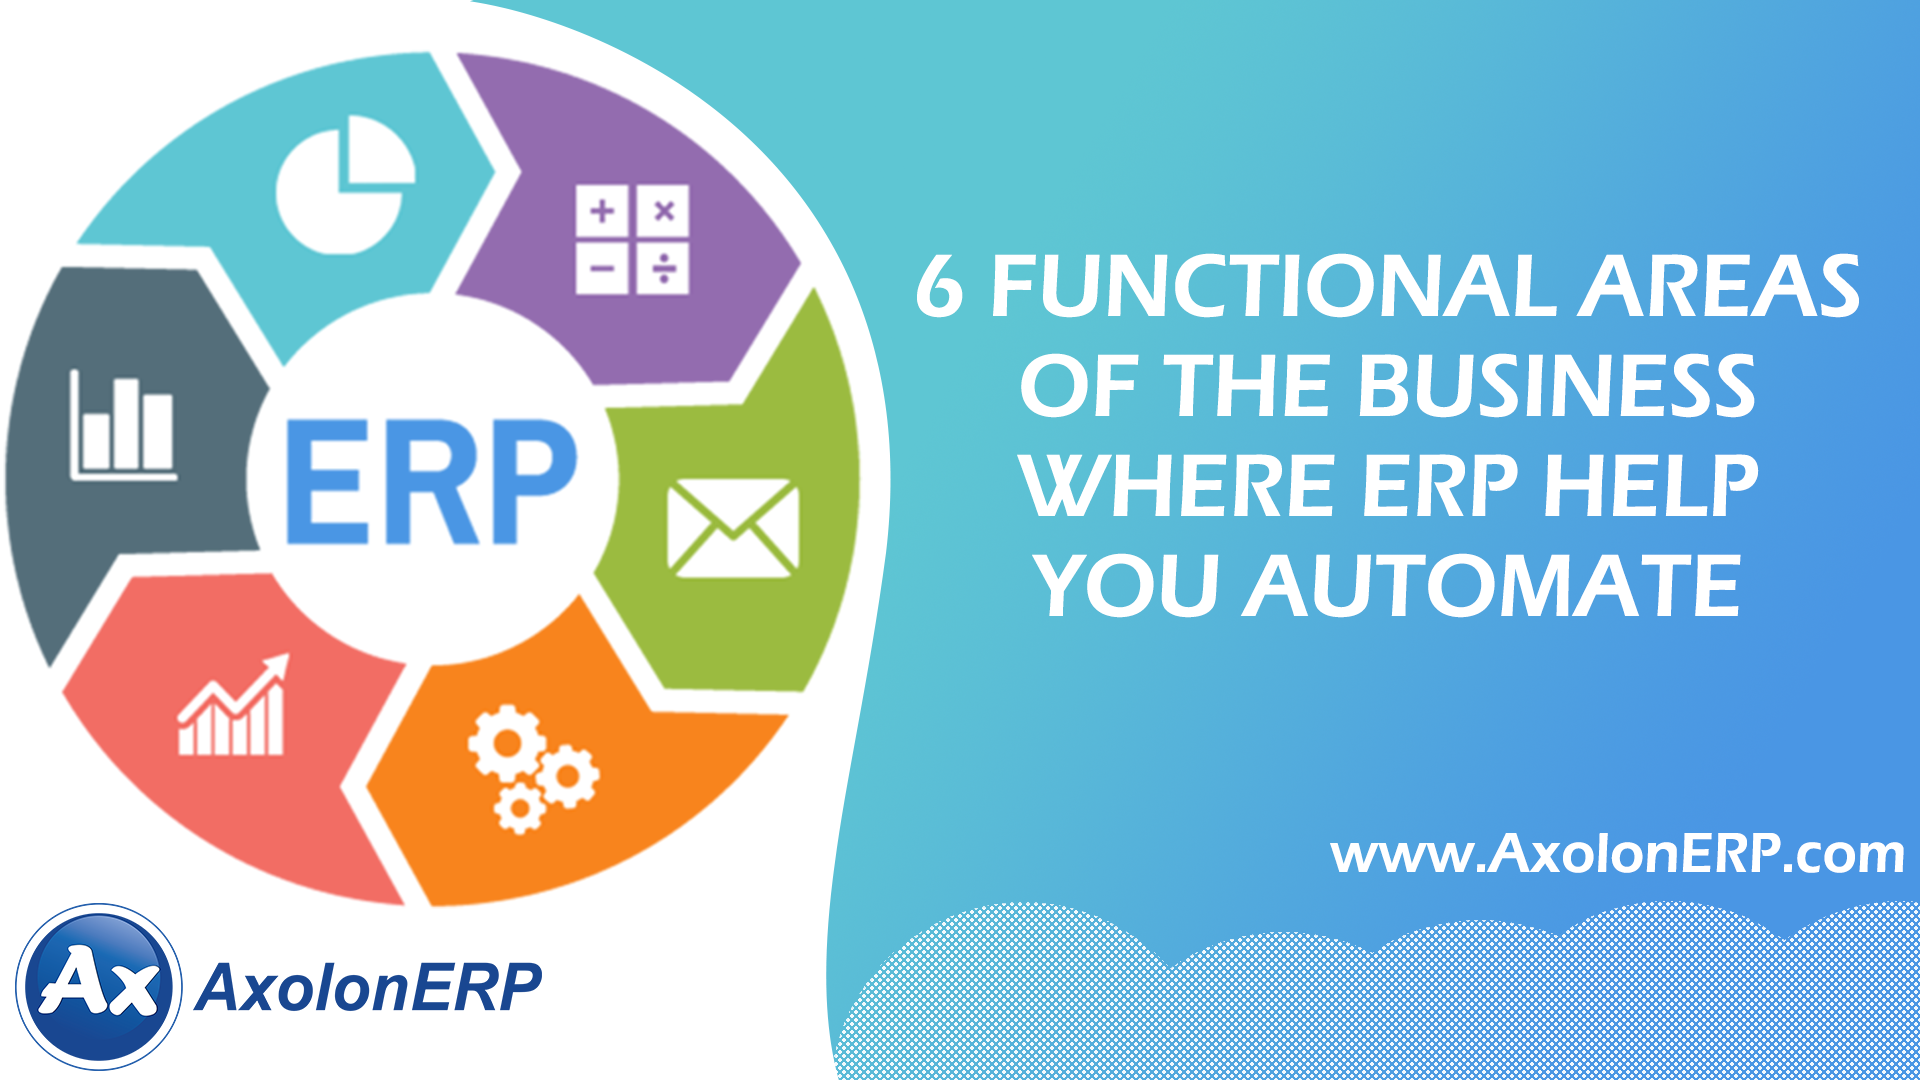 4 Functional Areas of the Business Where ERP Help You Automate